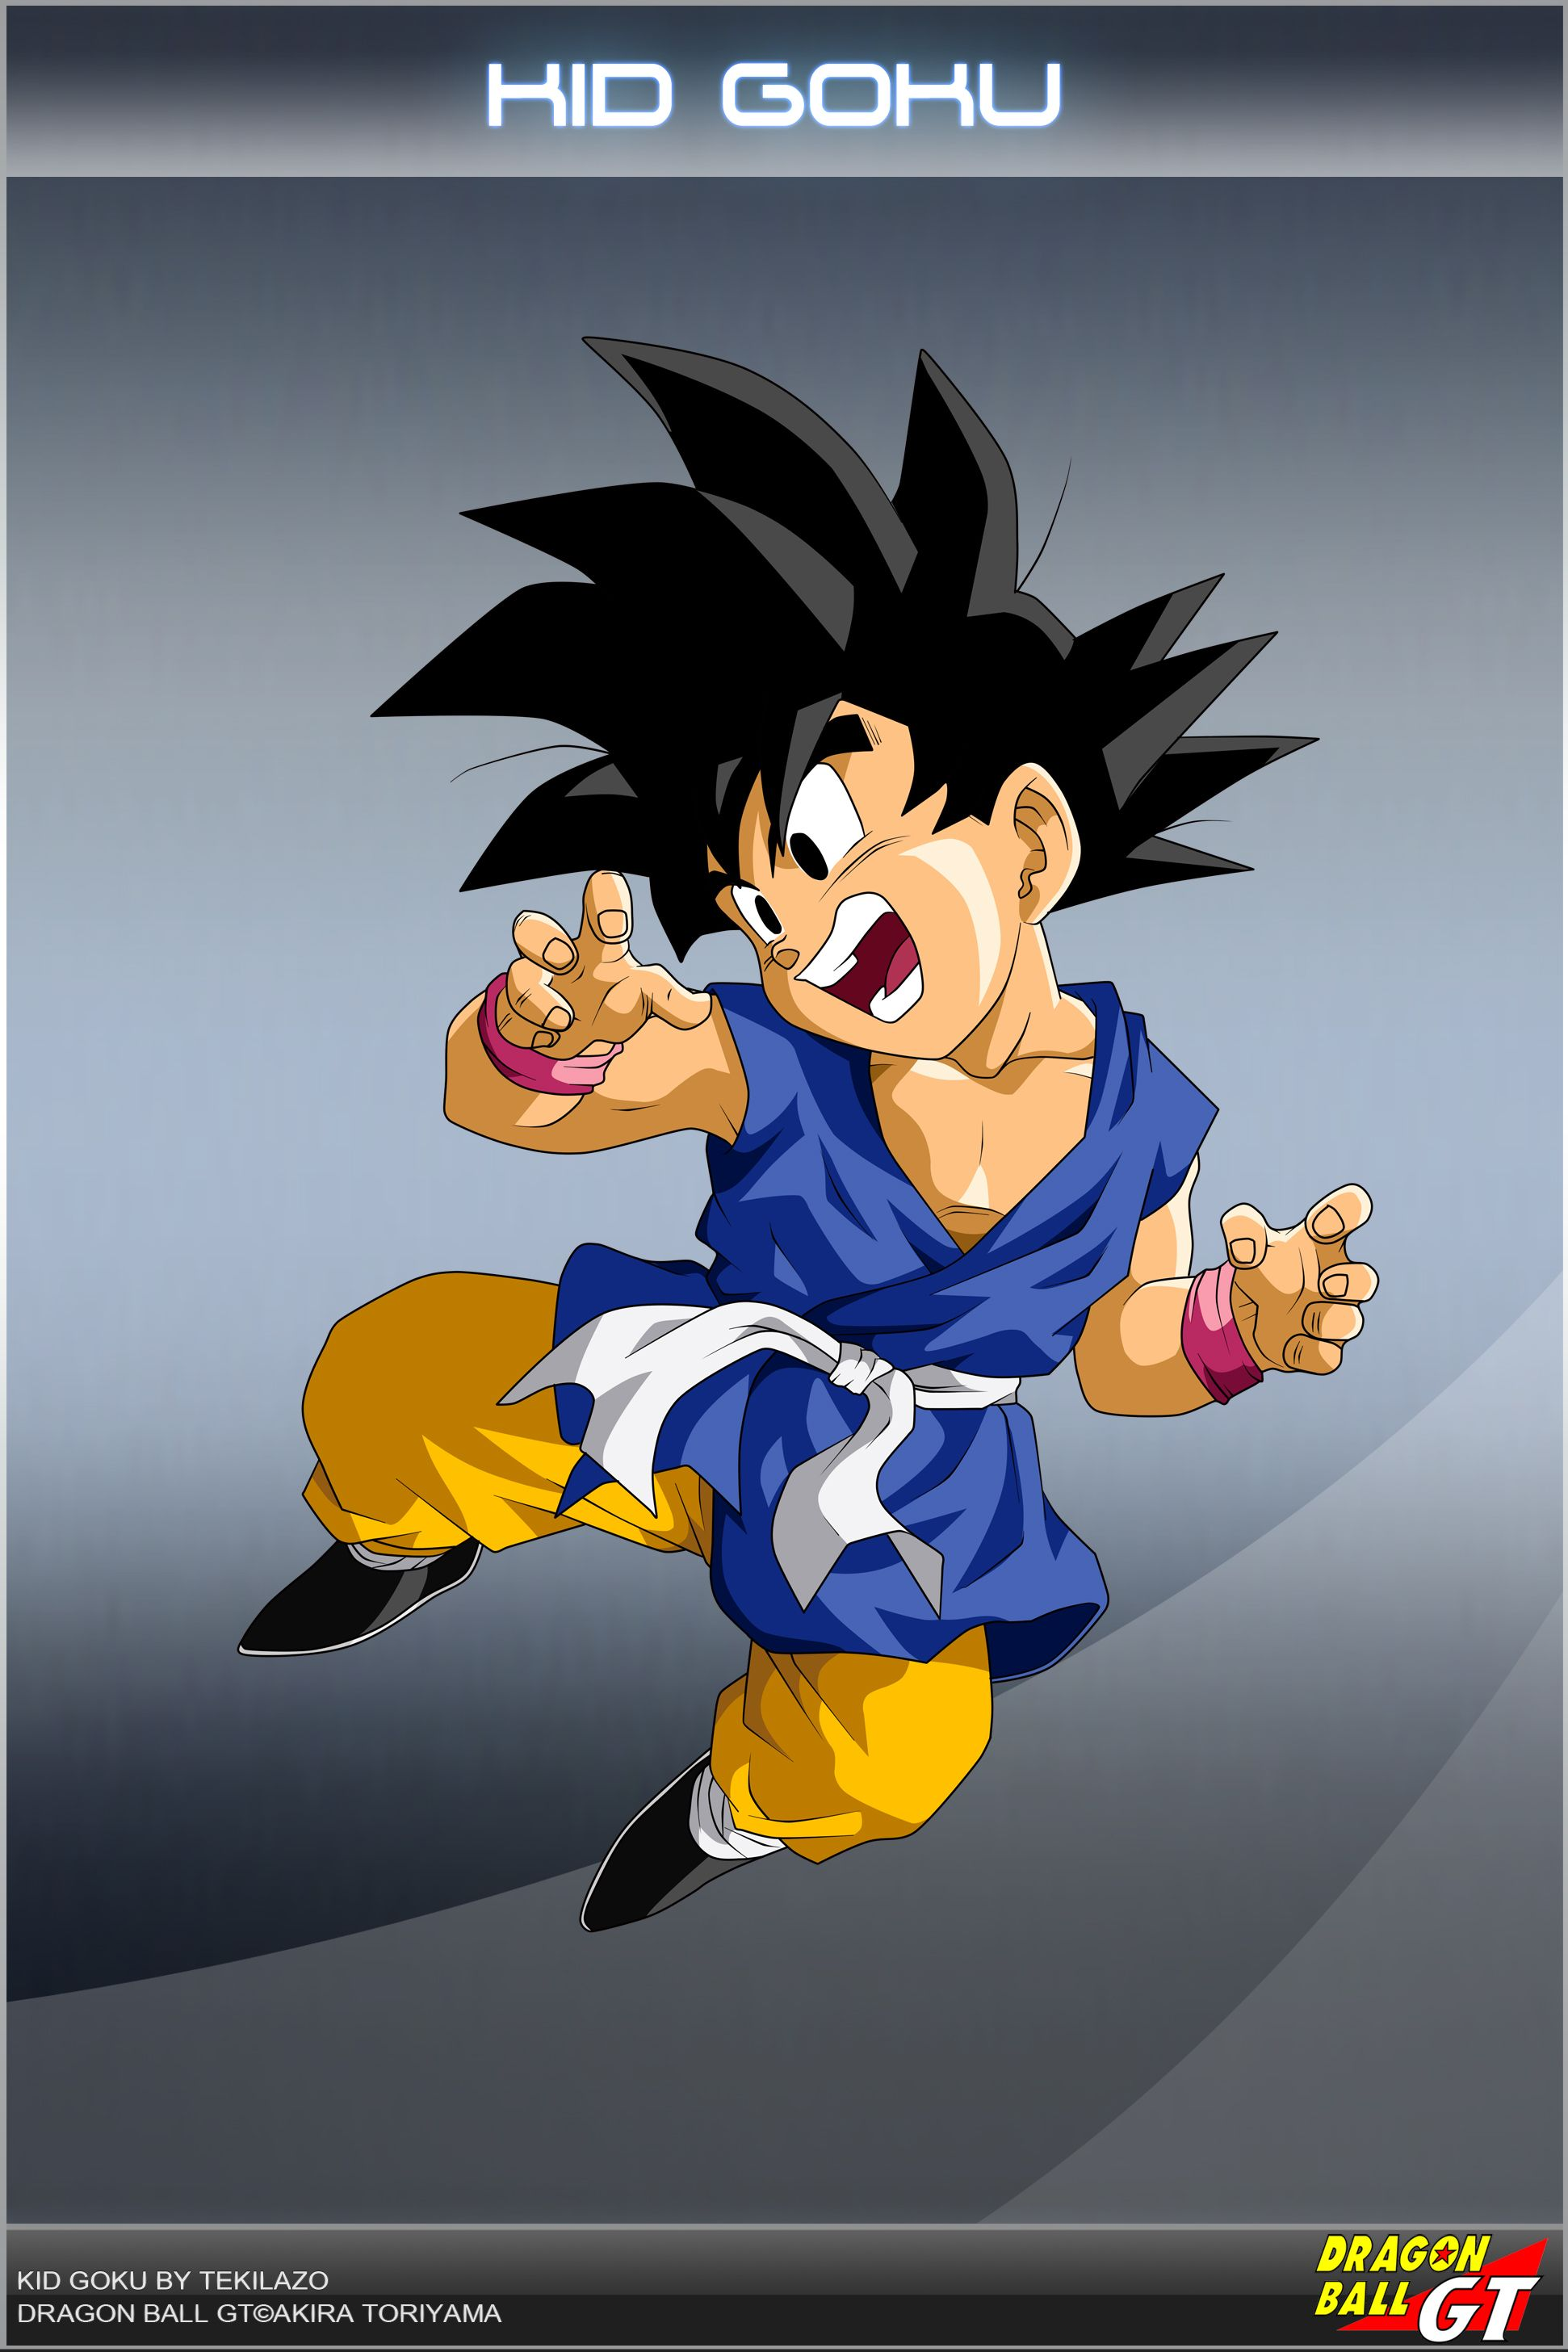 Dragon ball gt 3 anime wallpapers pinterest dragon - Dragon ball gt goku wallpaper ...